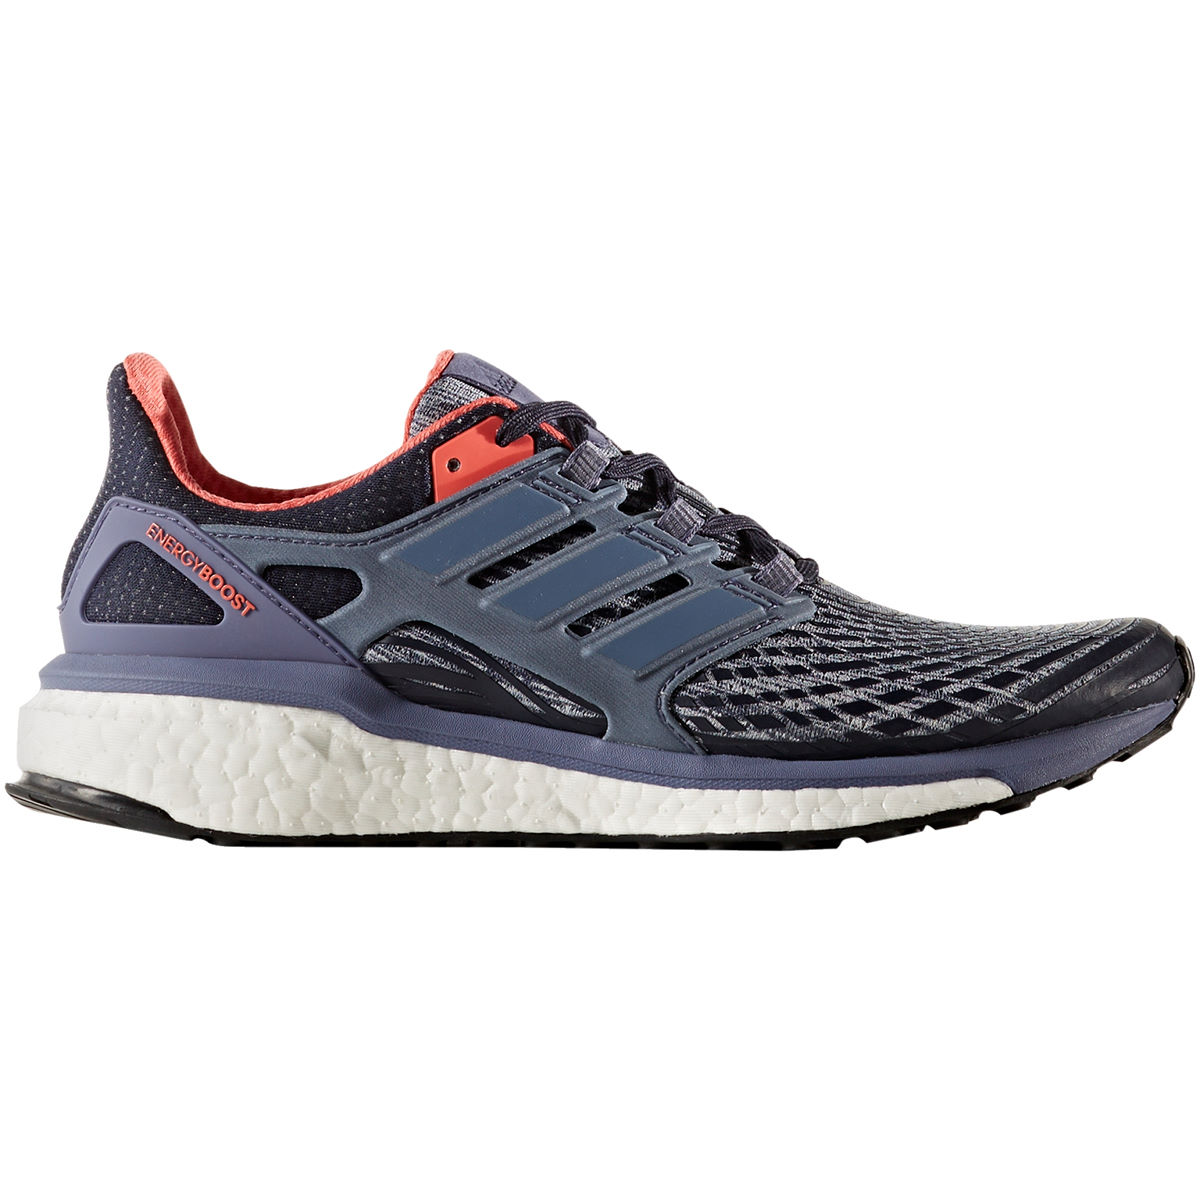 Chaussures Femme Adidas Energy Boost - 8 LEGEND INK F17/SUPER